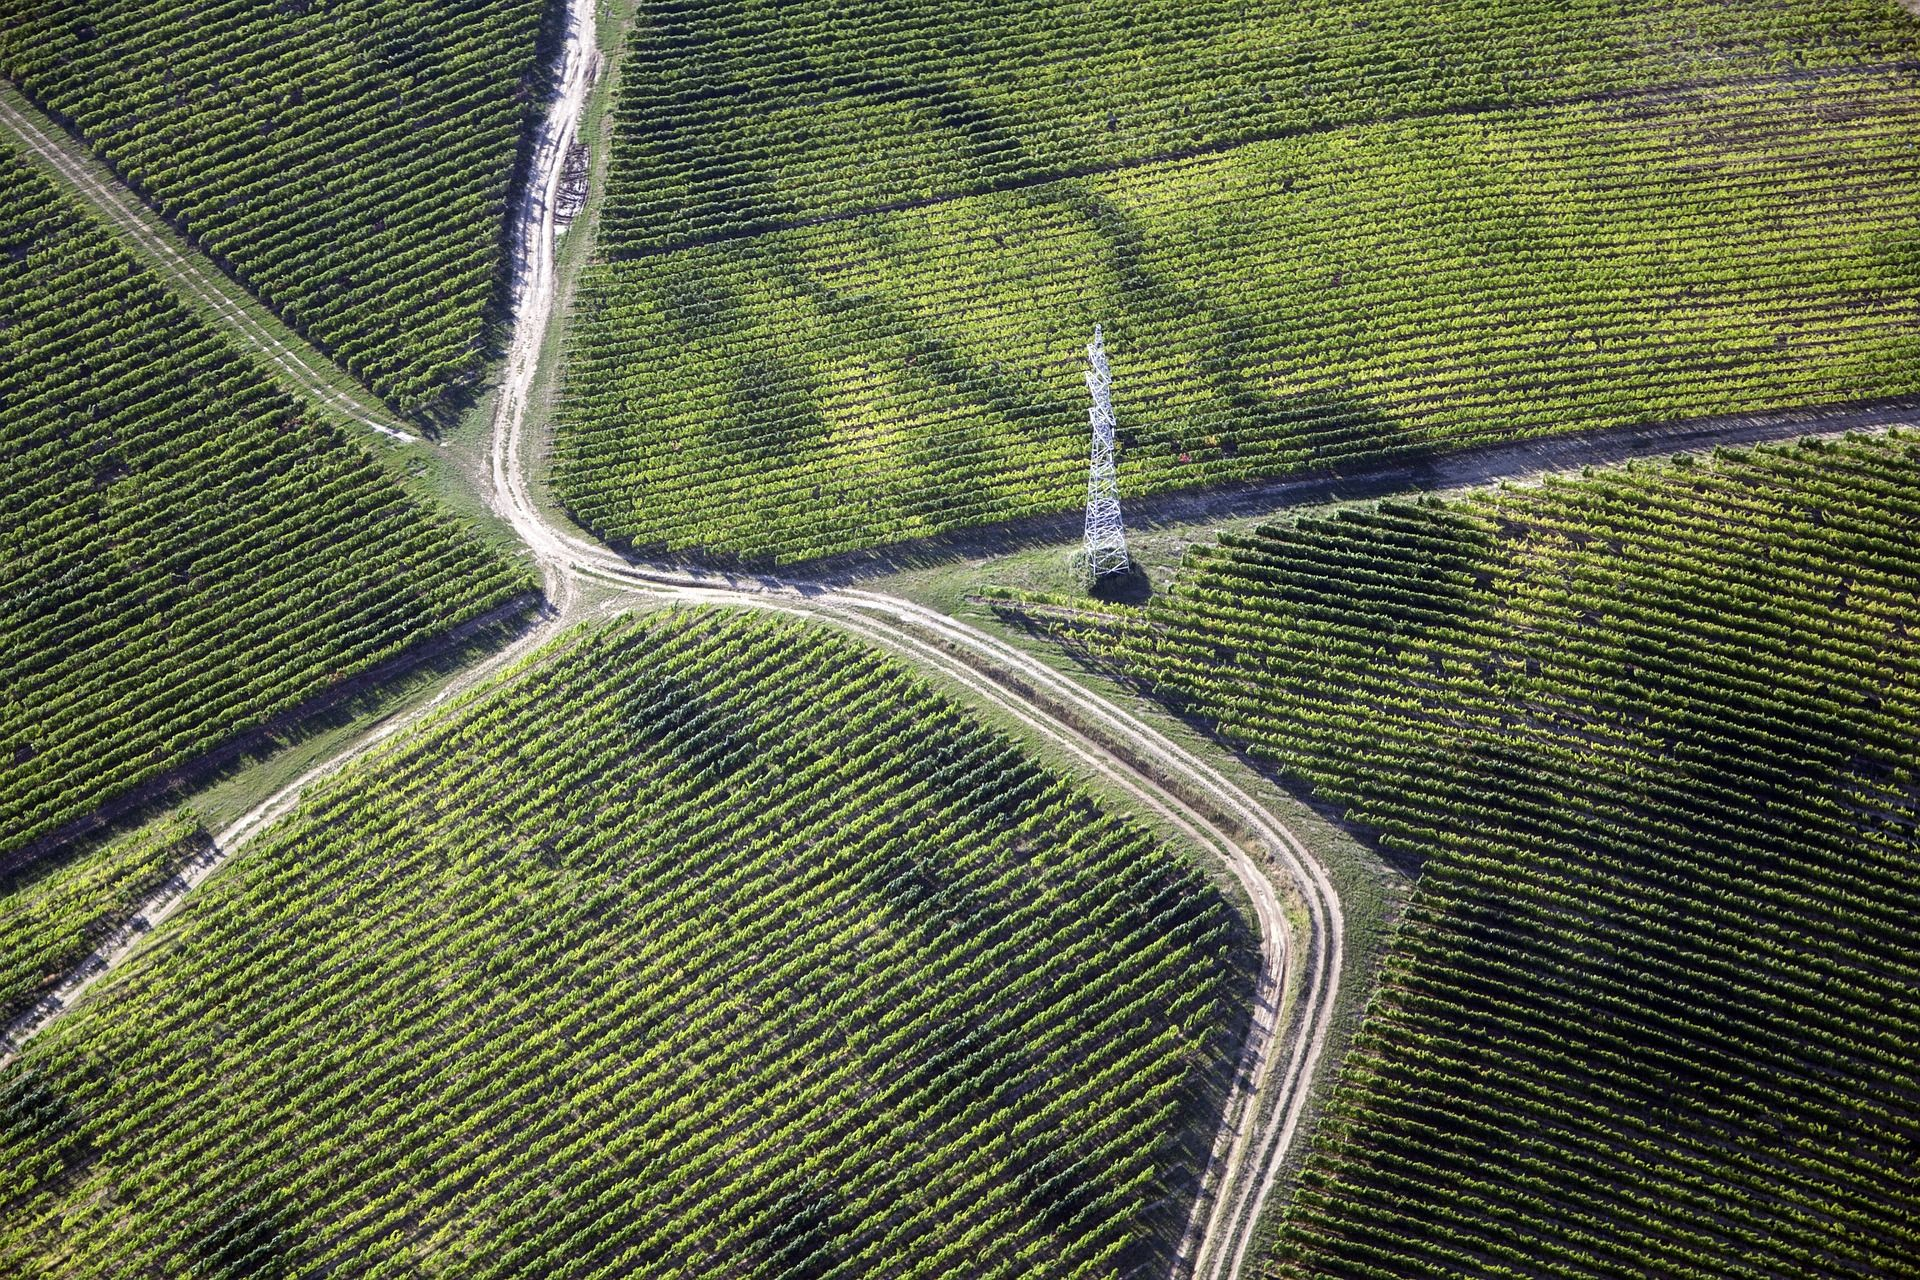 Wine region with vineyards, WSET level 3 study guide